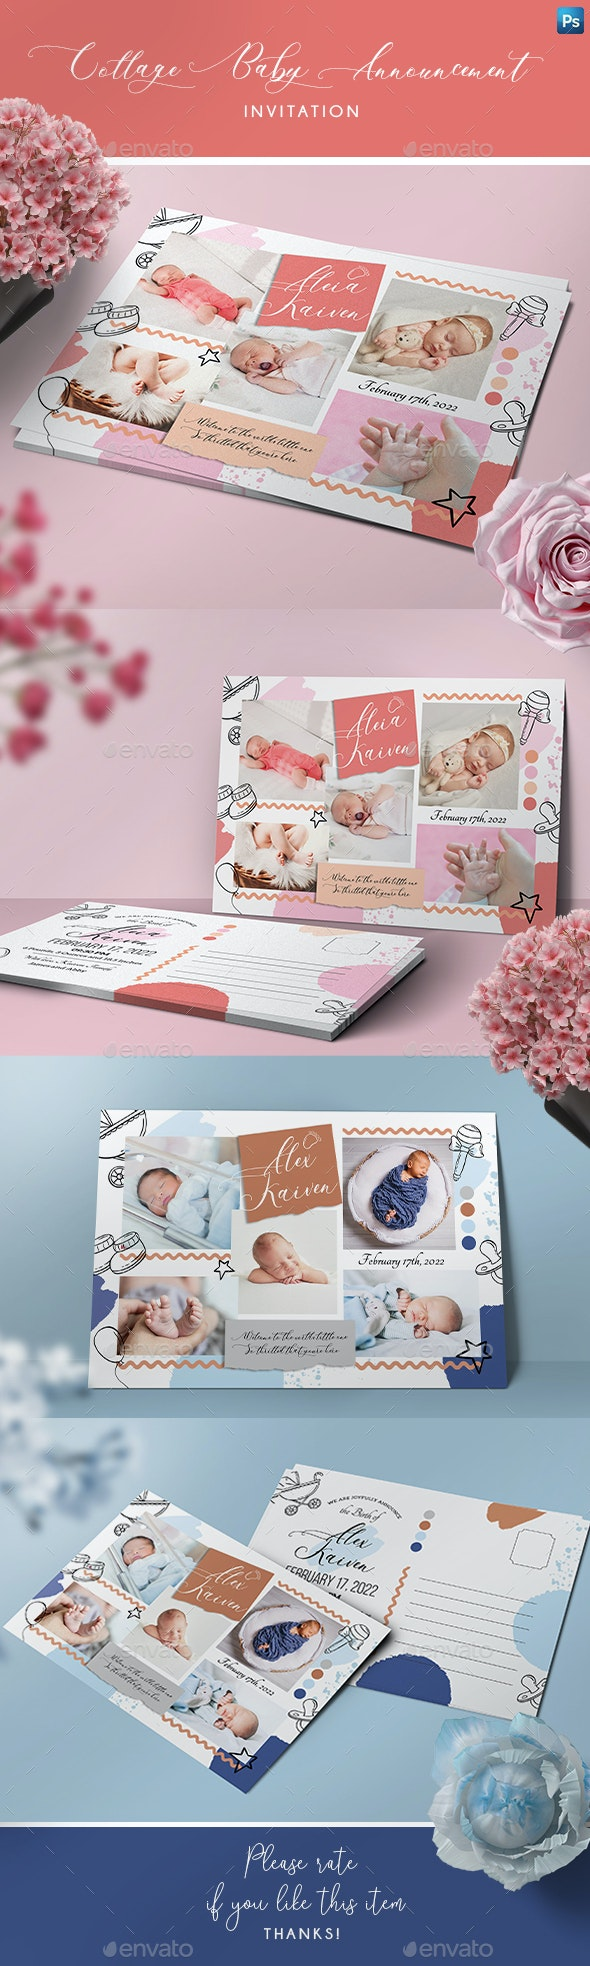 Collage Baby Announcement Card - Family Cards & Invites